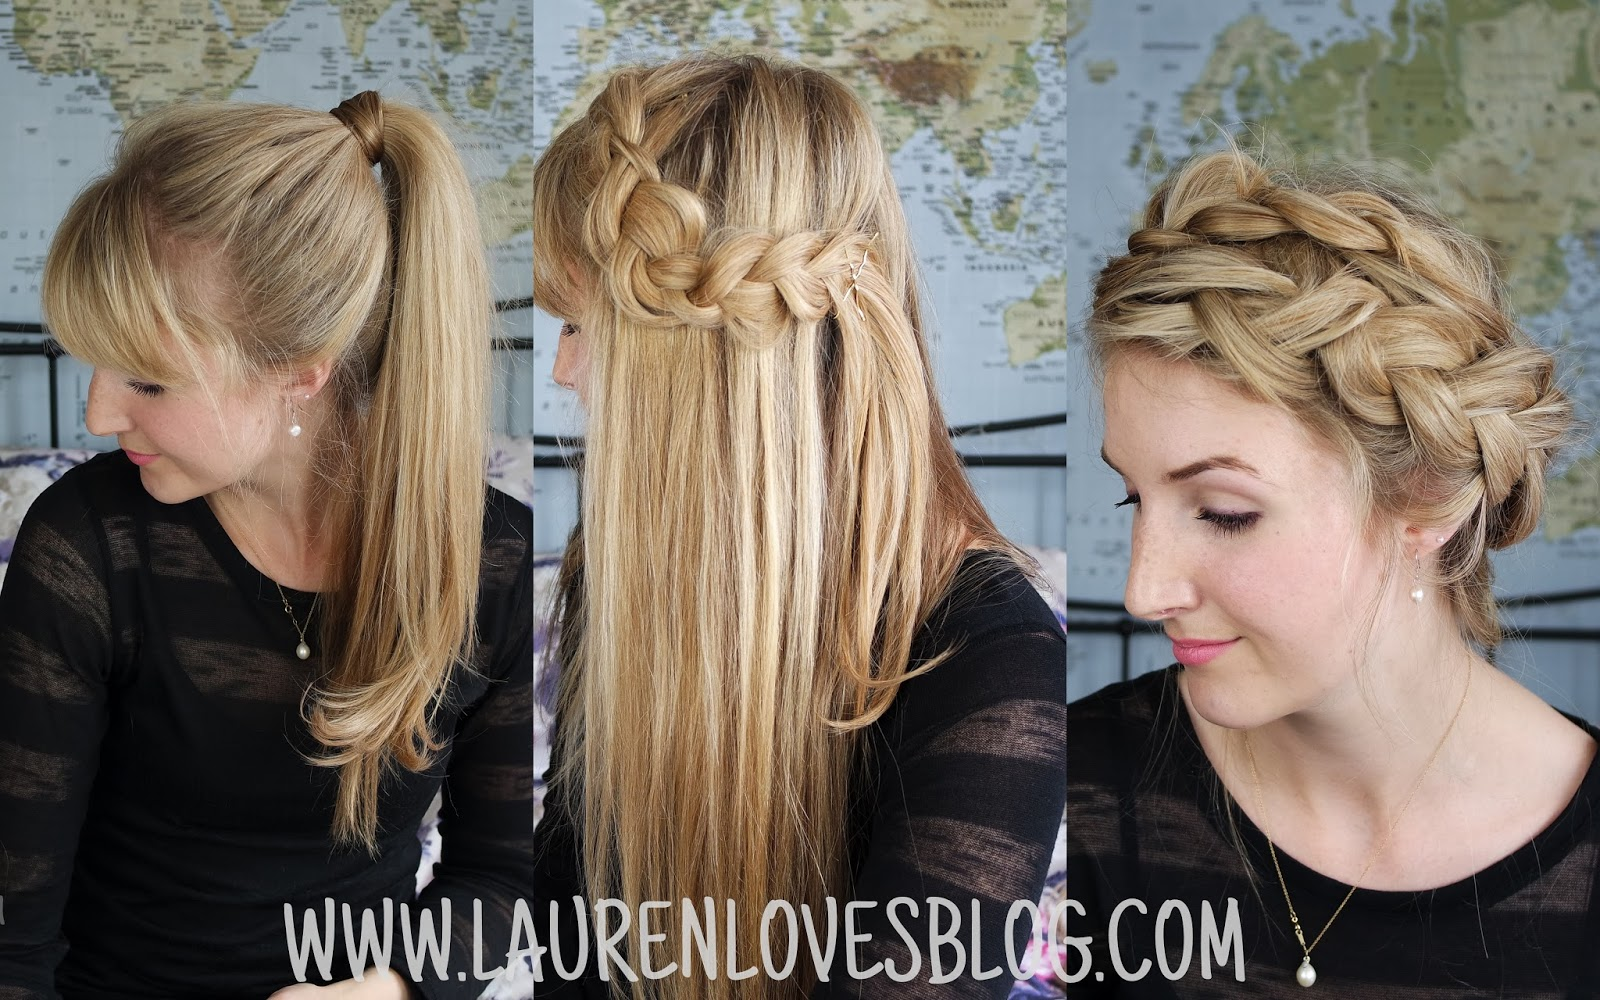 Video lullabellz hair extensions review and hair style ideas video lullabellz hair extensions review and hair style ideas pmusecretfo Images